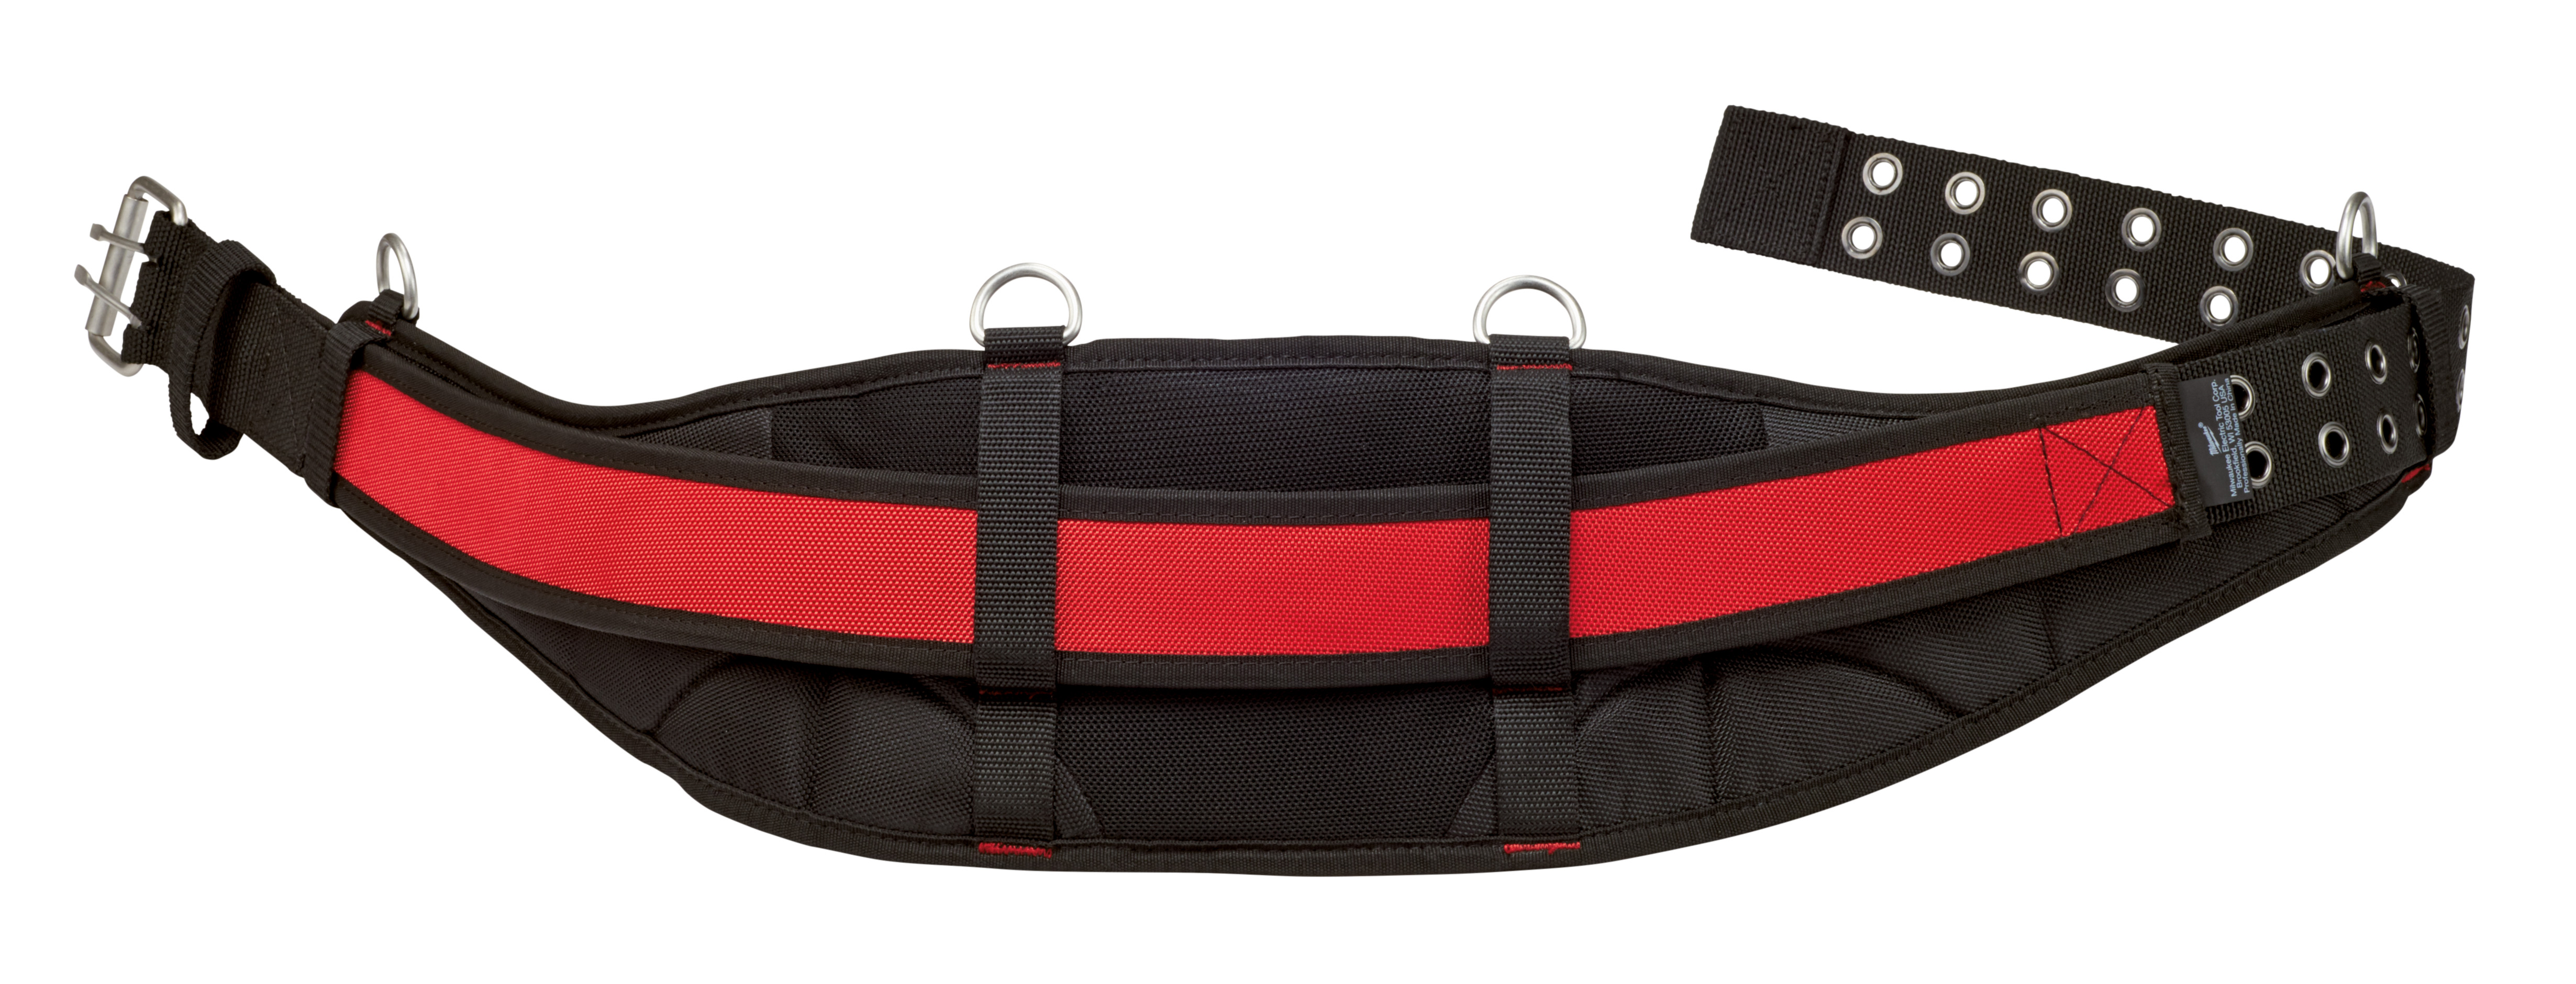 Milwaukee® 48-22-8140 Universal Padded Work Belt, Denier Ballistic Nylon, Black/Red